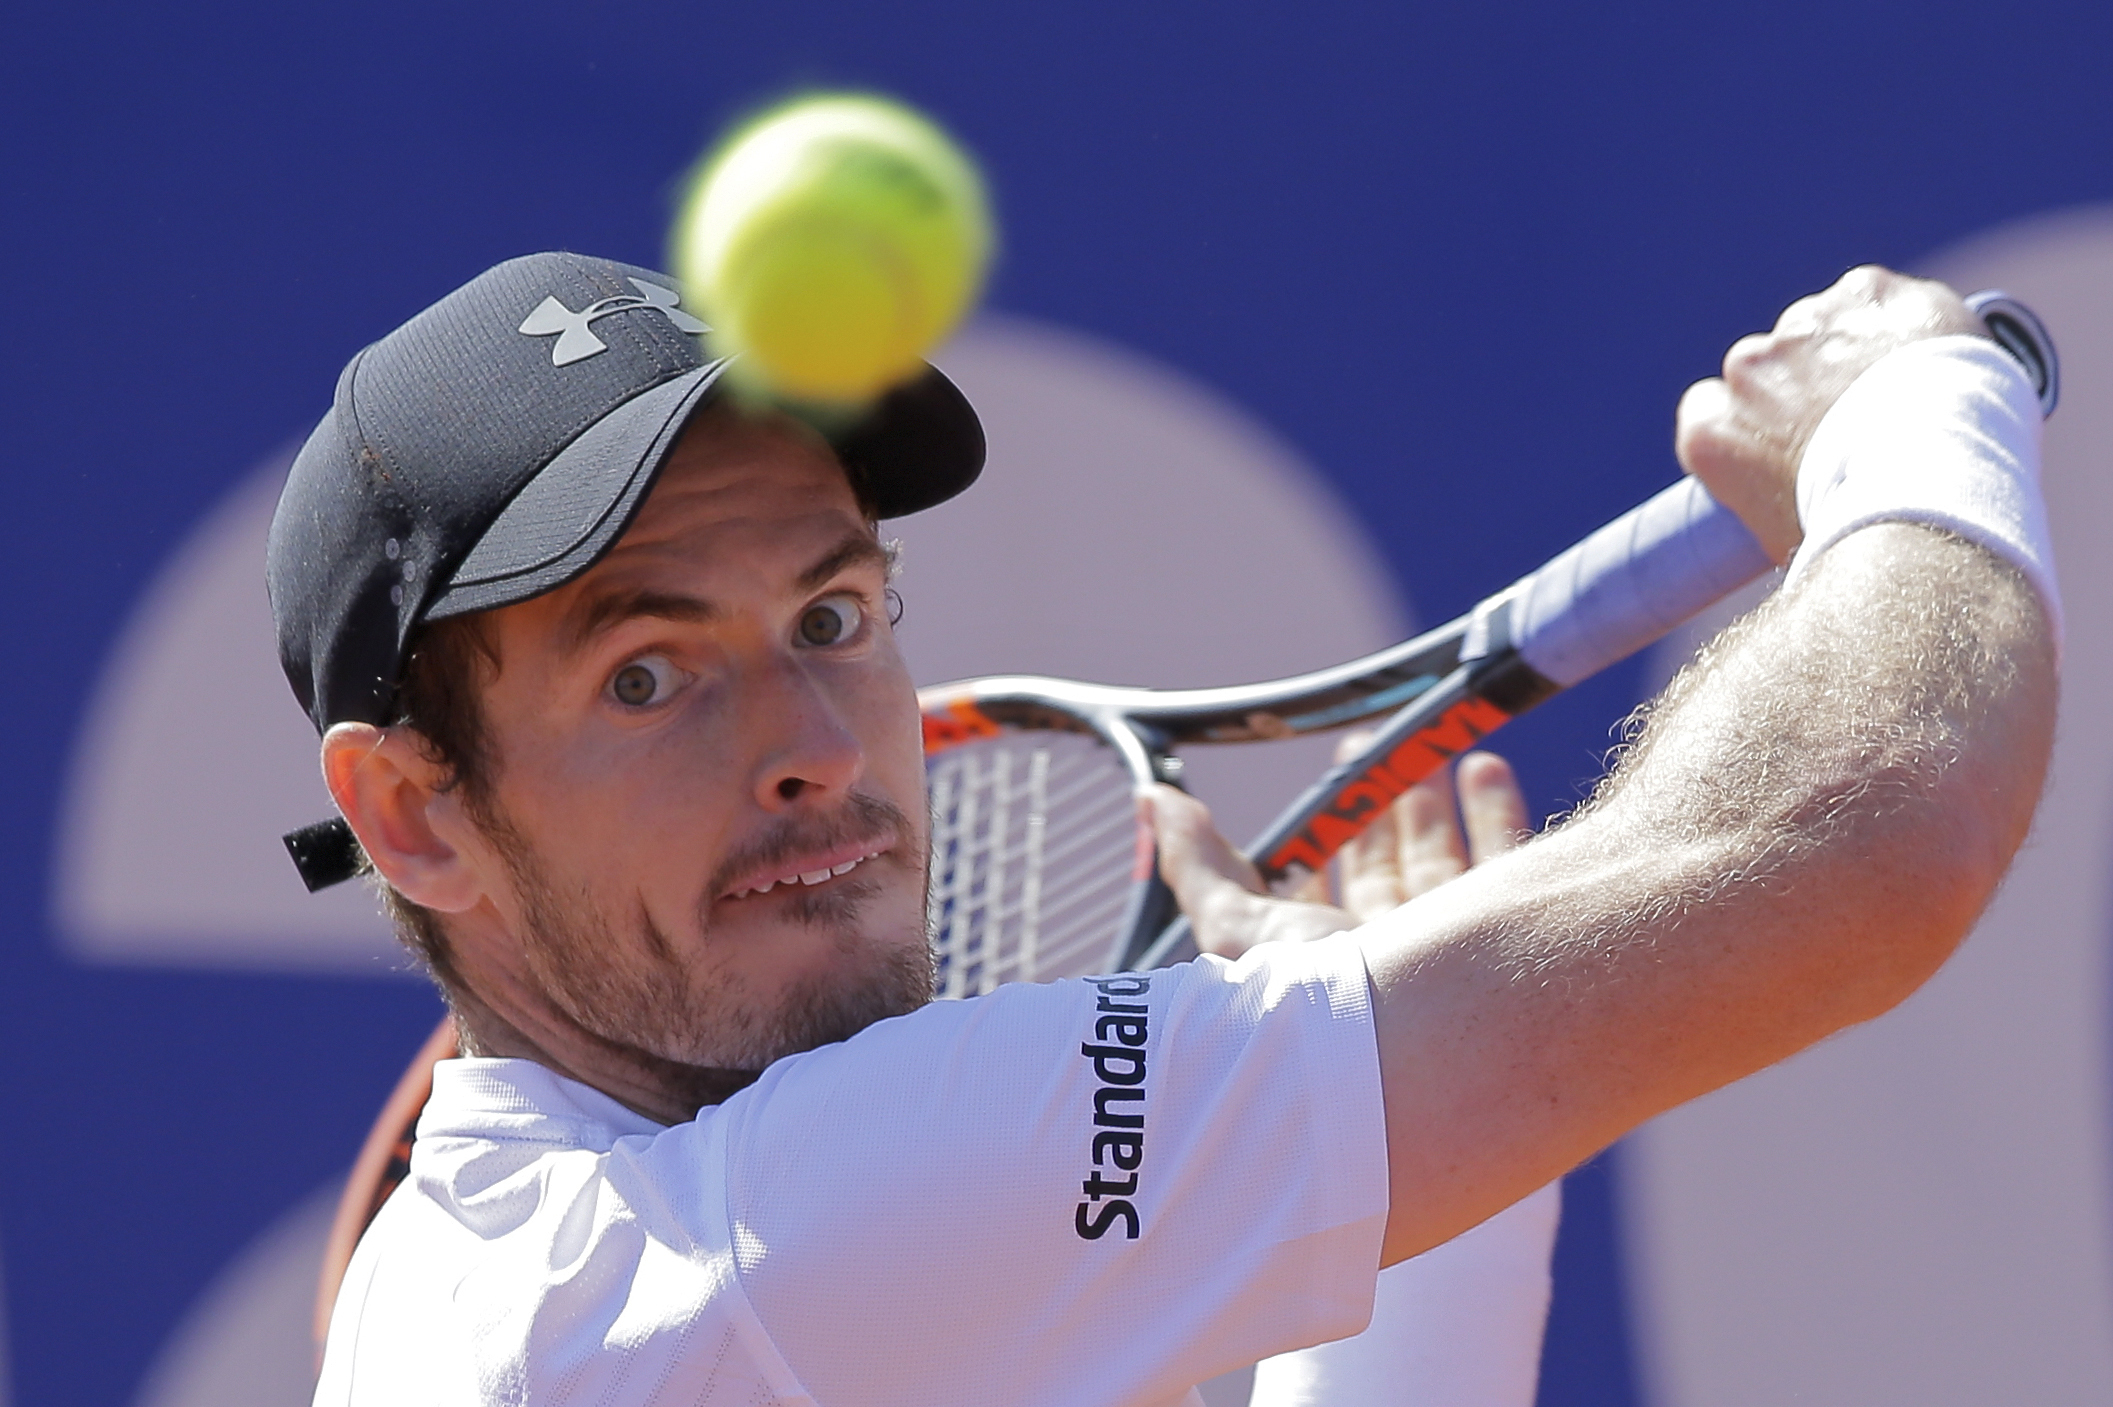 FILE - In this Friday, April 28, 2017 file photo, Andy Murray of Britain eyes the ball before playing a return shot to Albert Ramos-Vinolas of Spain during a quarterfinal match at the Barcelona Open Tennis Tournament in Barcelona, Spain. After months of d